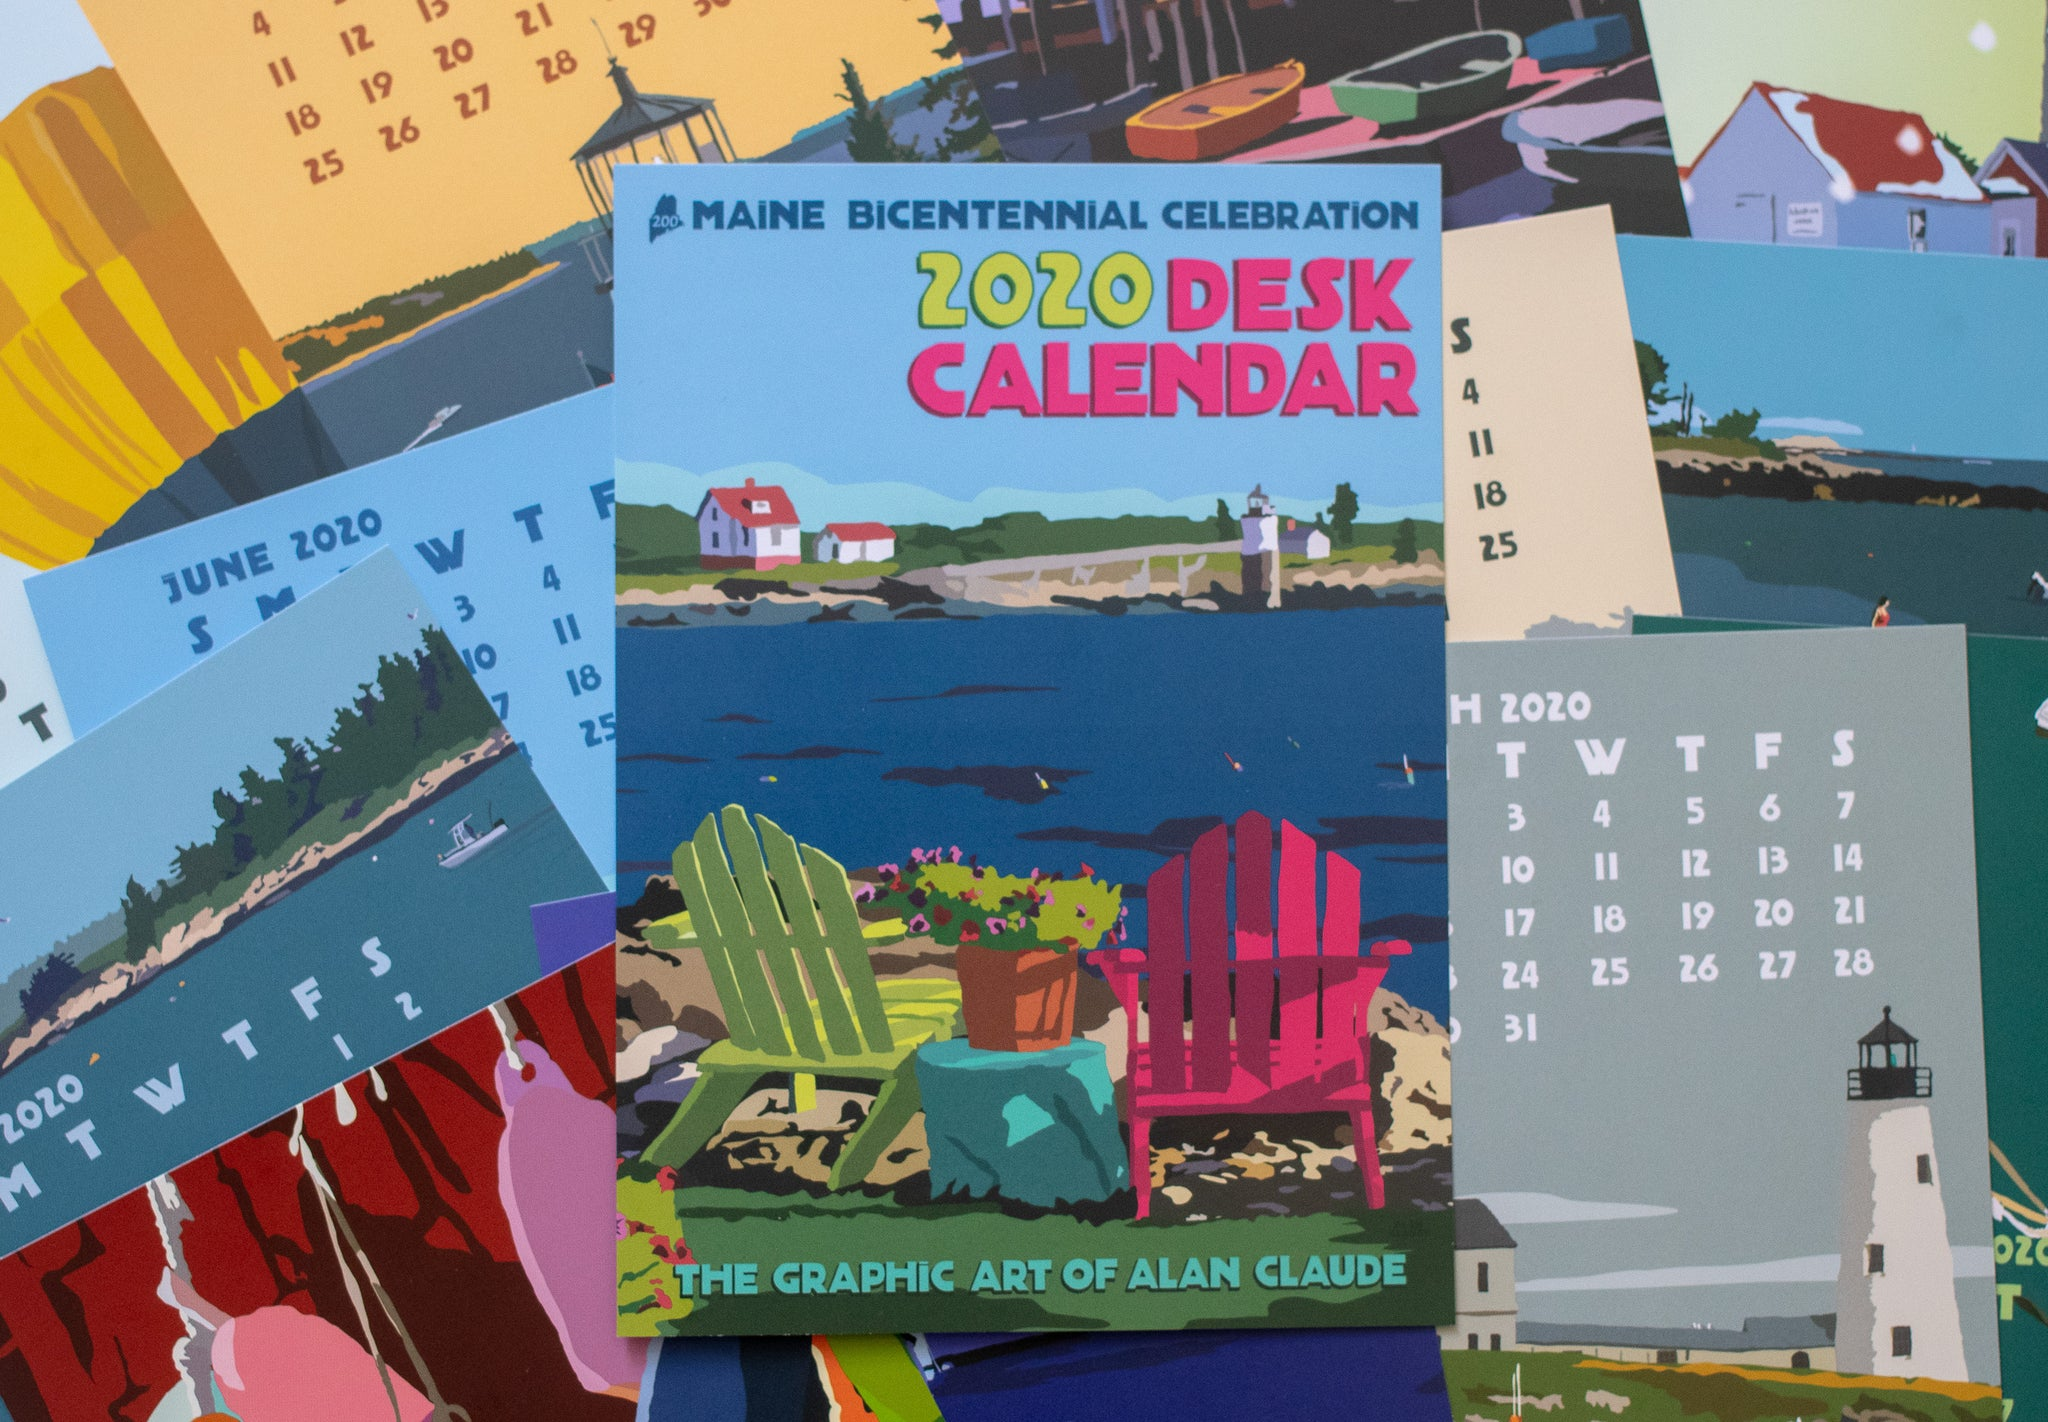 2020 DESK Art Calendar 5x7 retro vintage art desk style by Maine Artist Alan Claude